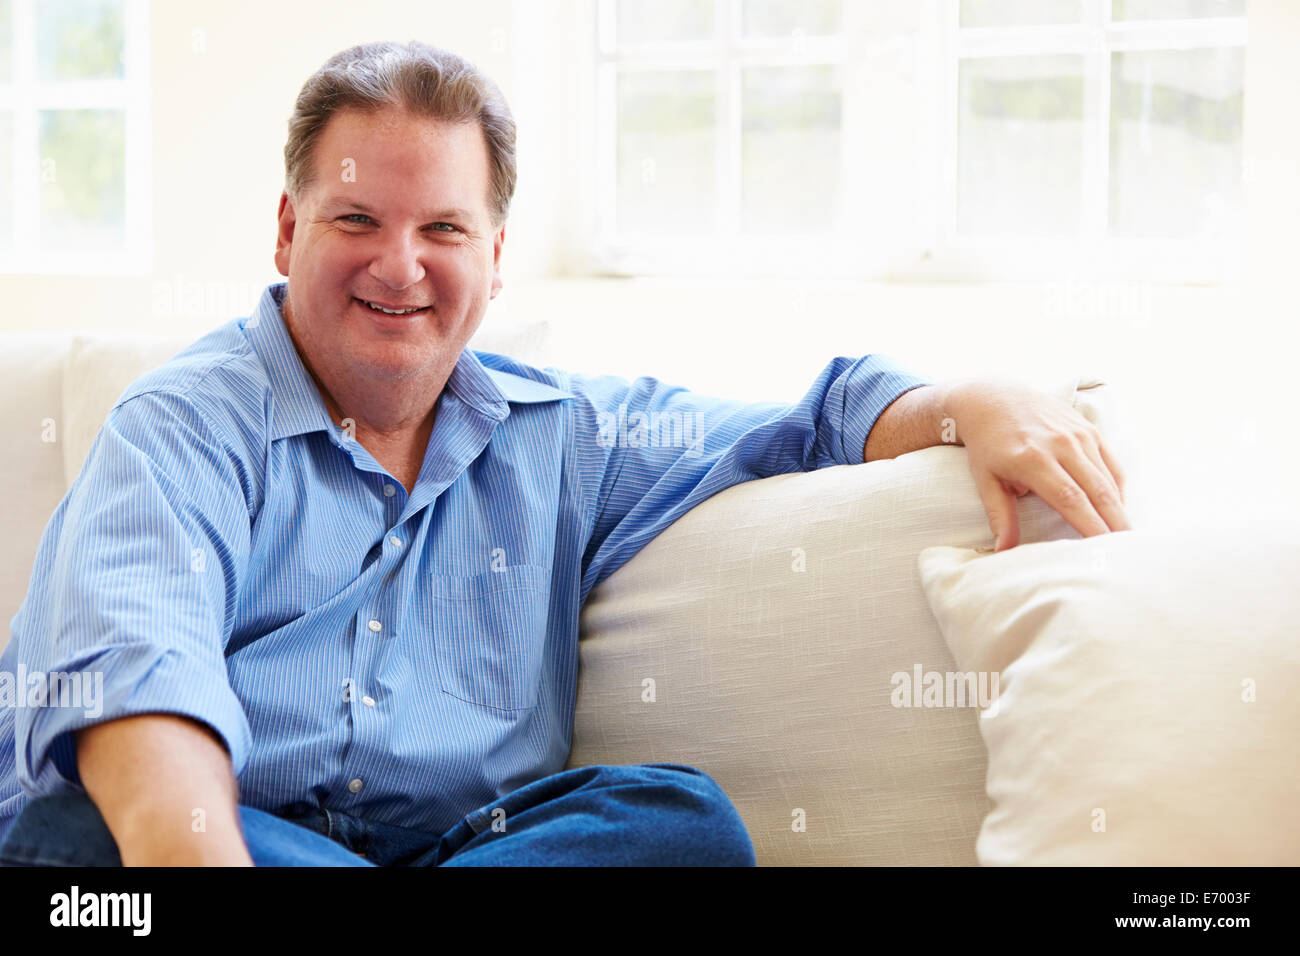 Portrait Of Overweight Man Sitting On Sofa - Stock Image